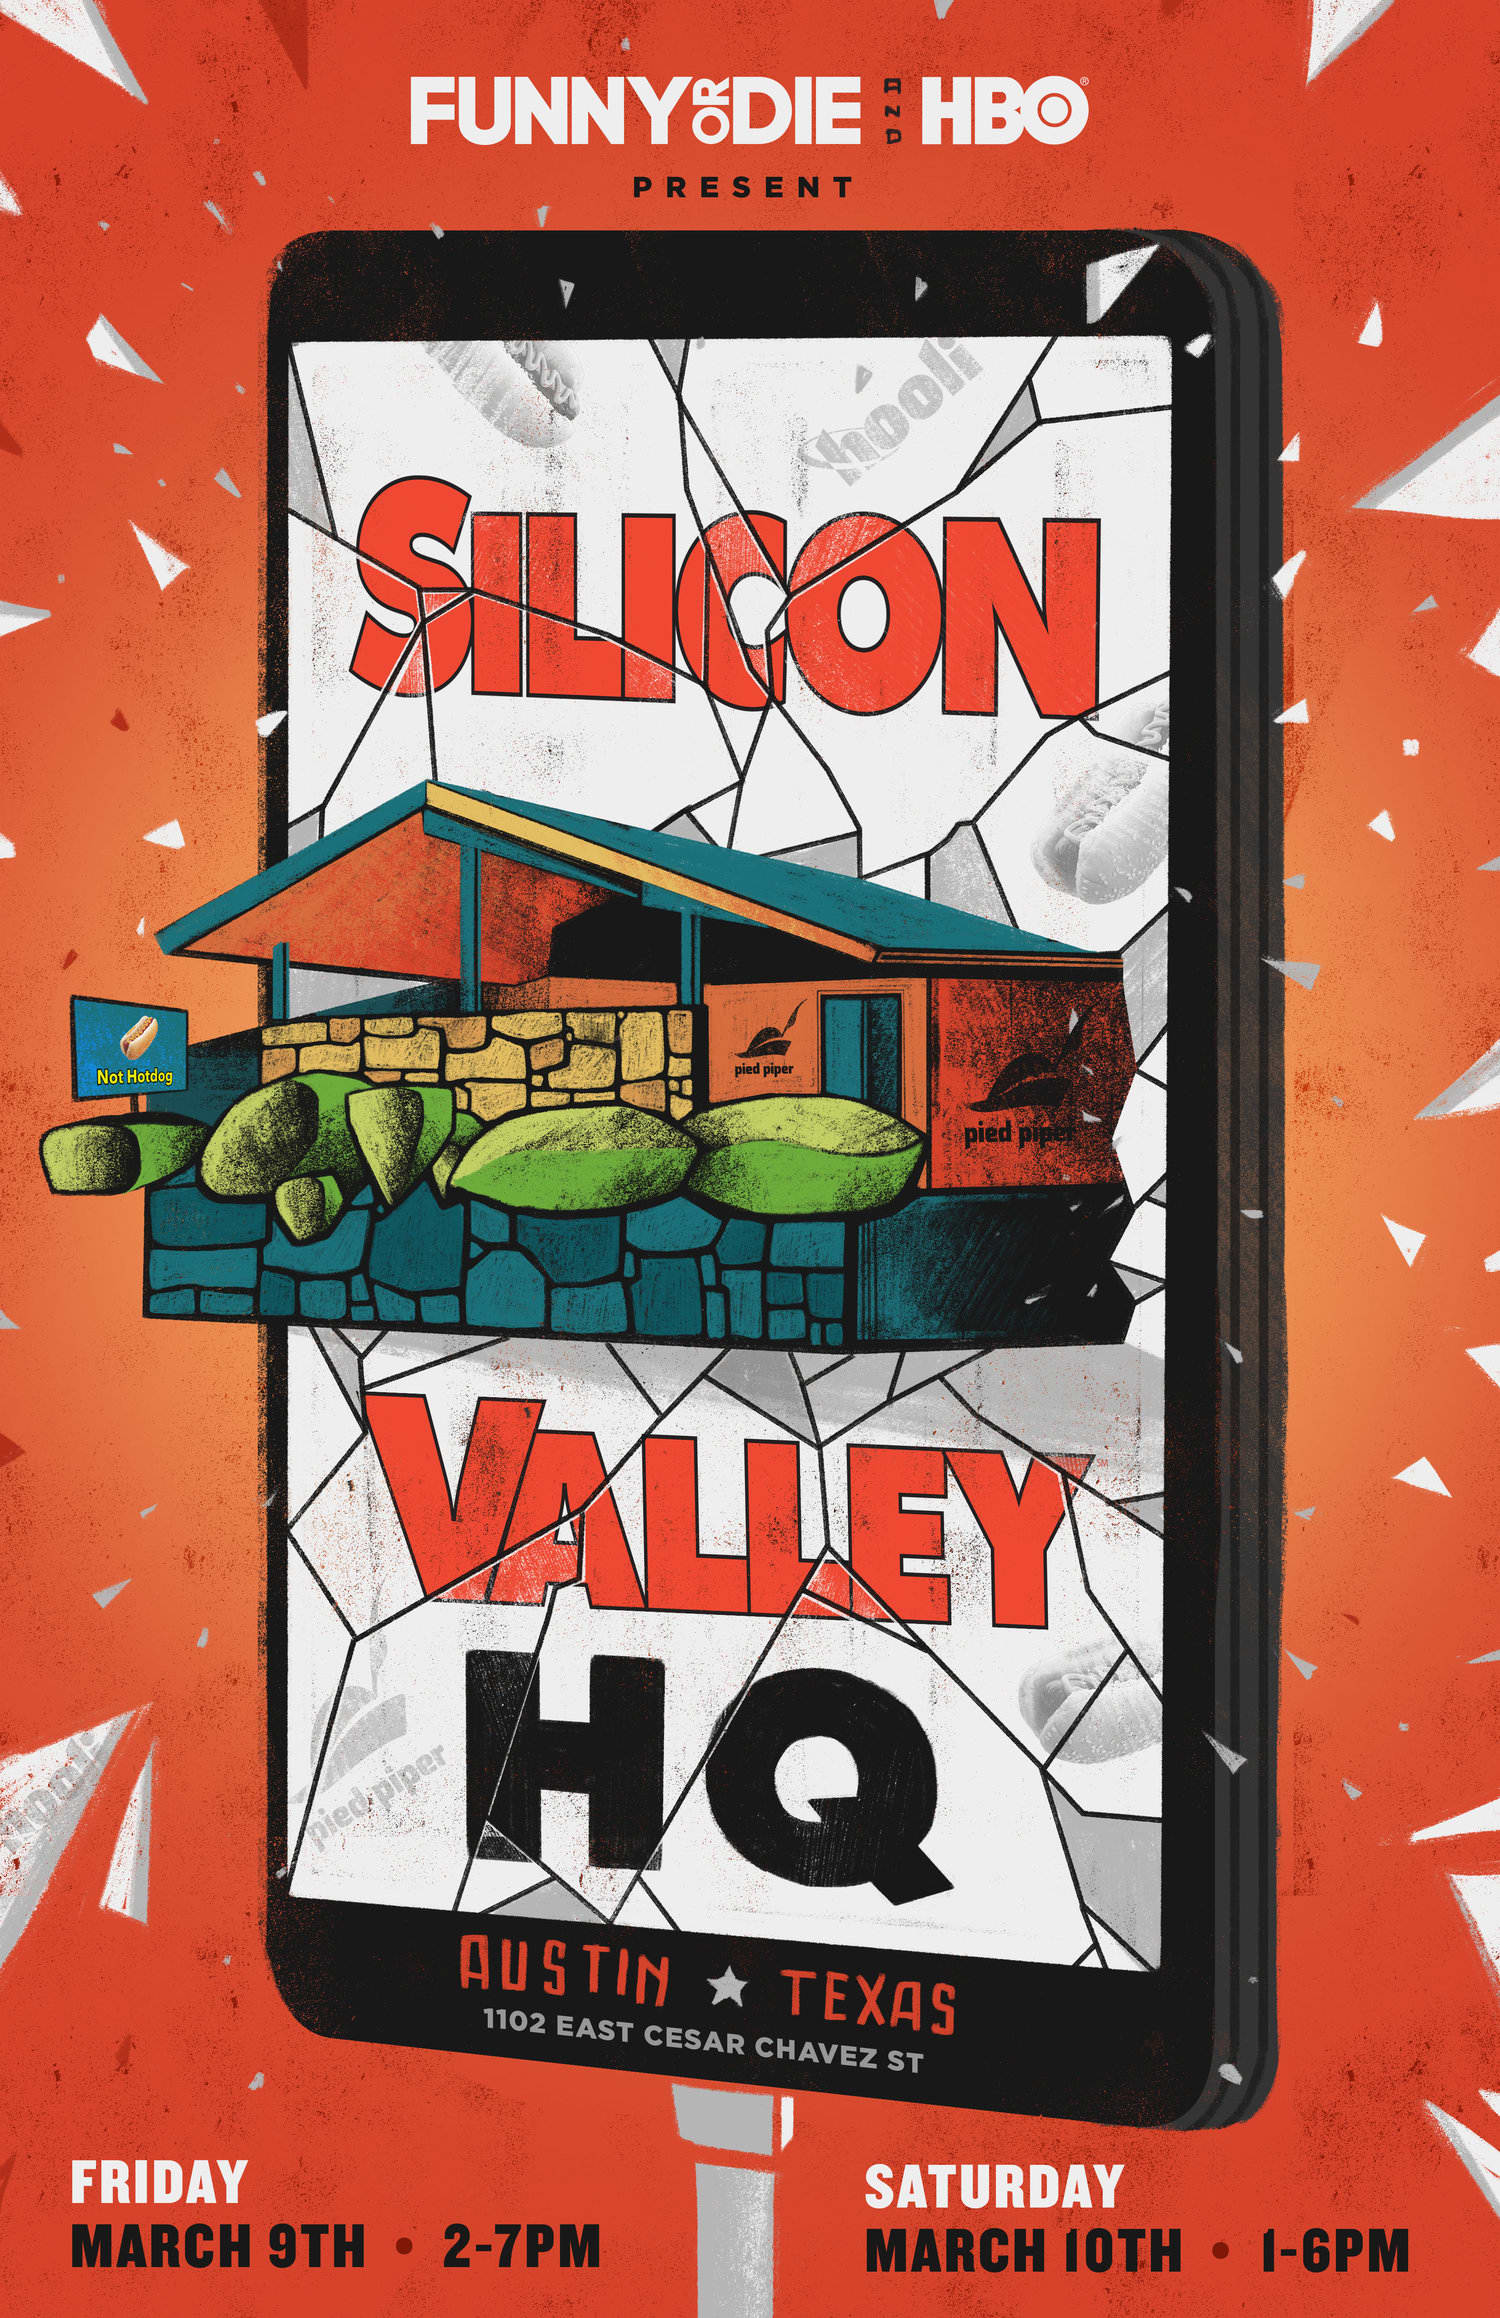 Silicon Valley HQ